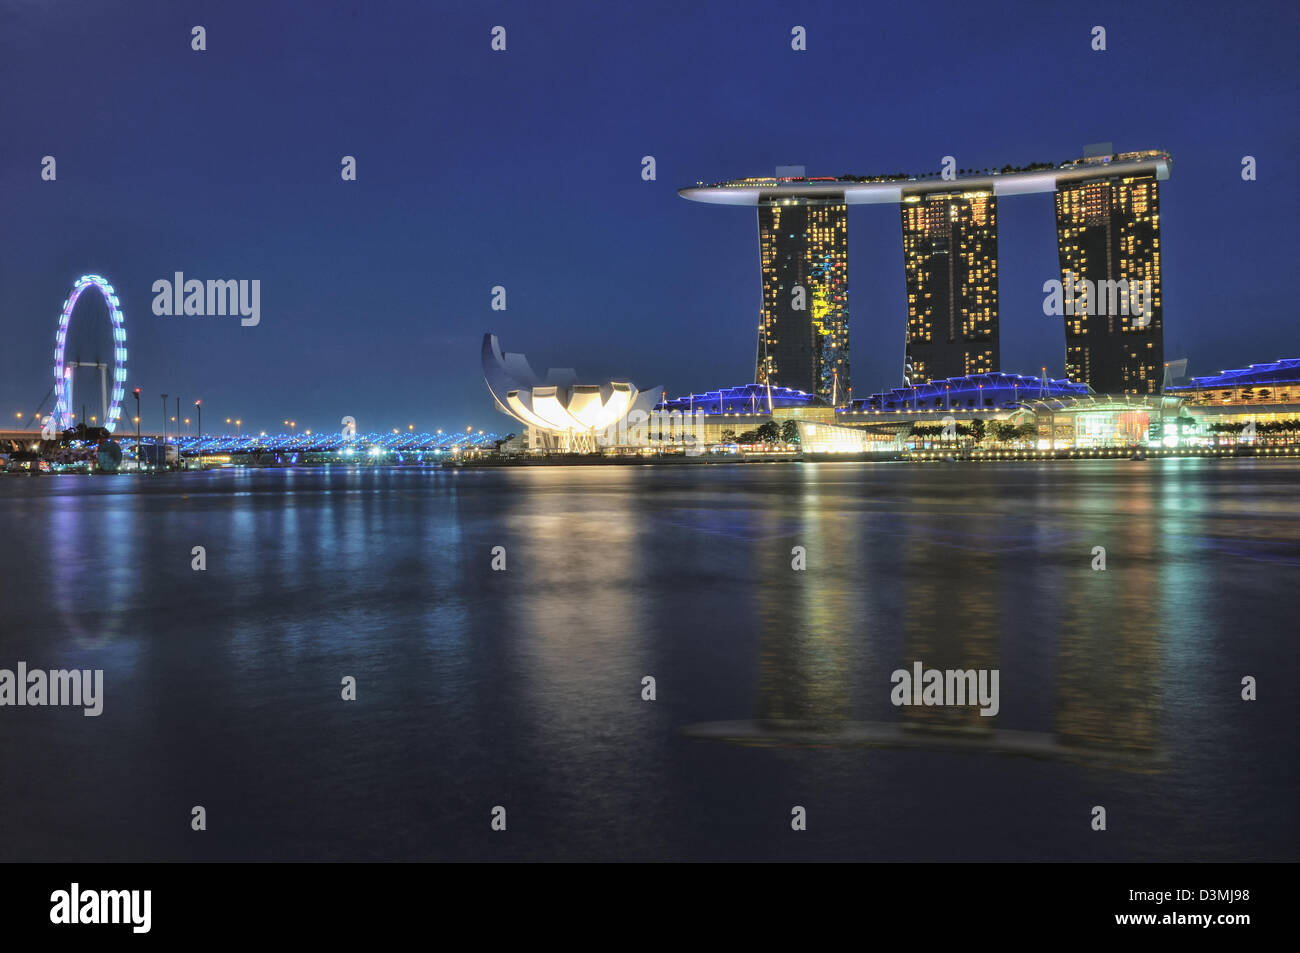 The photo shows the iconic Marina Bay Sands Hotel and Integrated Hotel, home to Singapore's second casino. - Stock Image